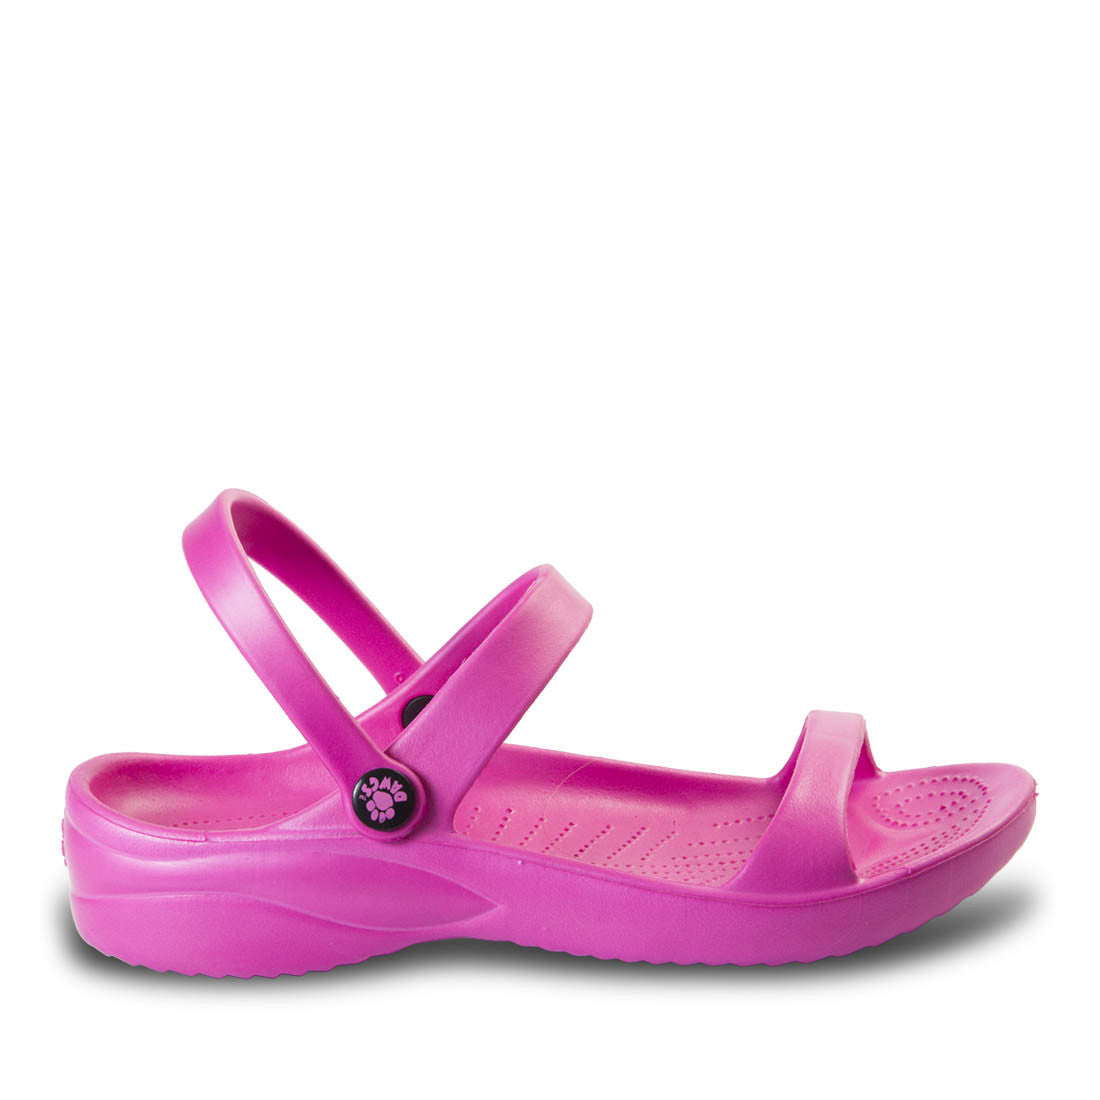 Image of Women's 3-Strap Sandals - Hot Pink